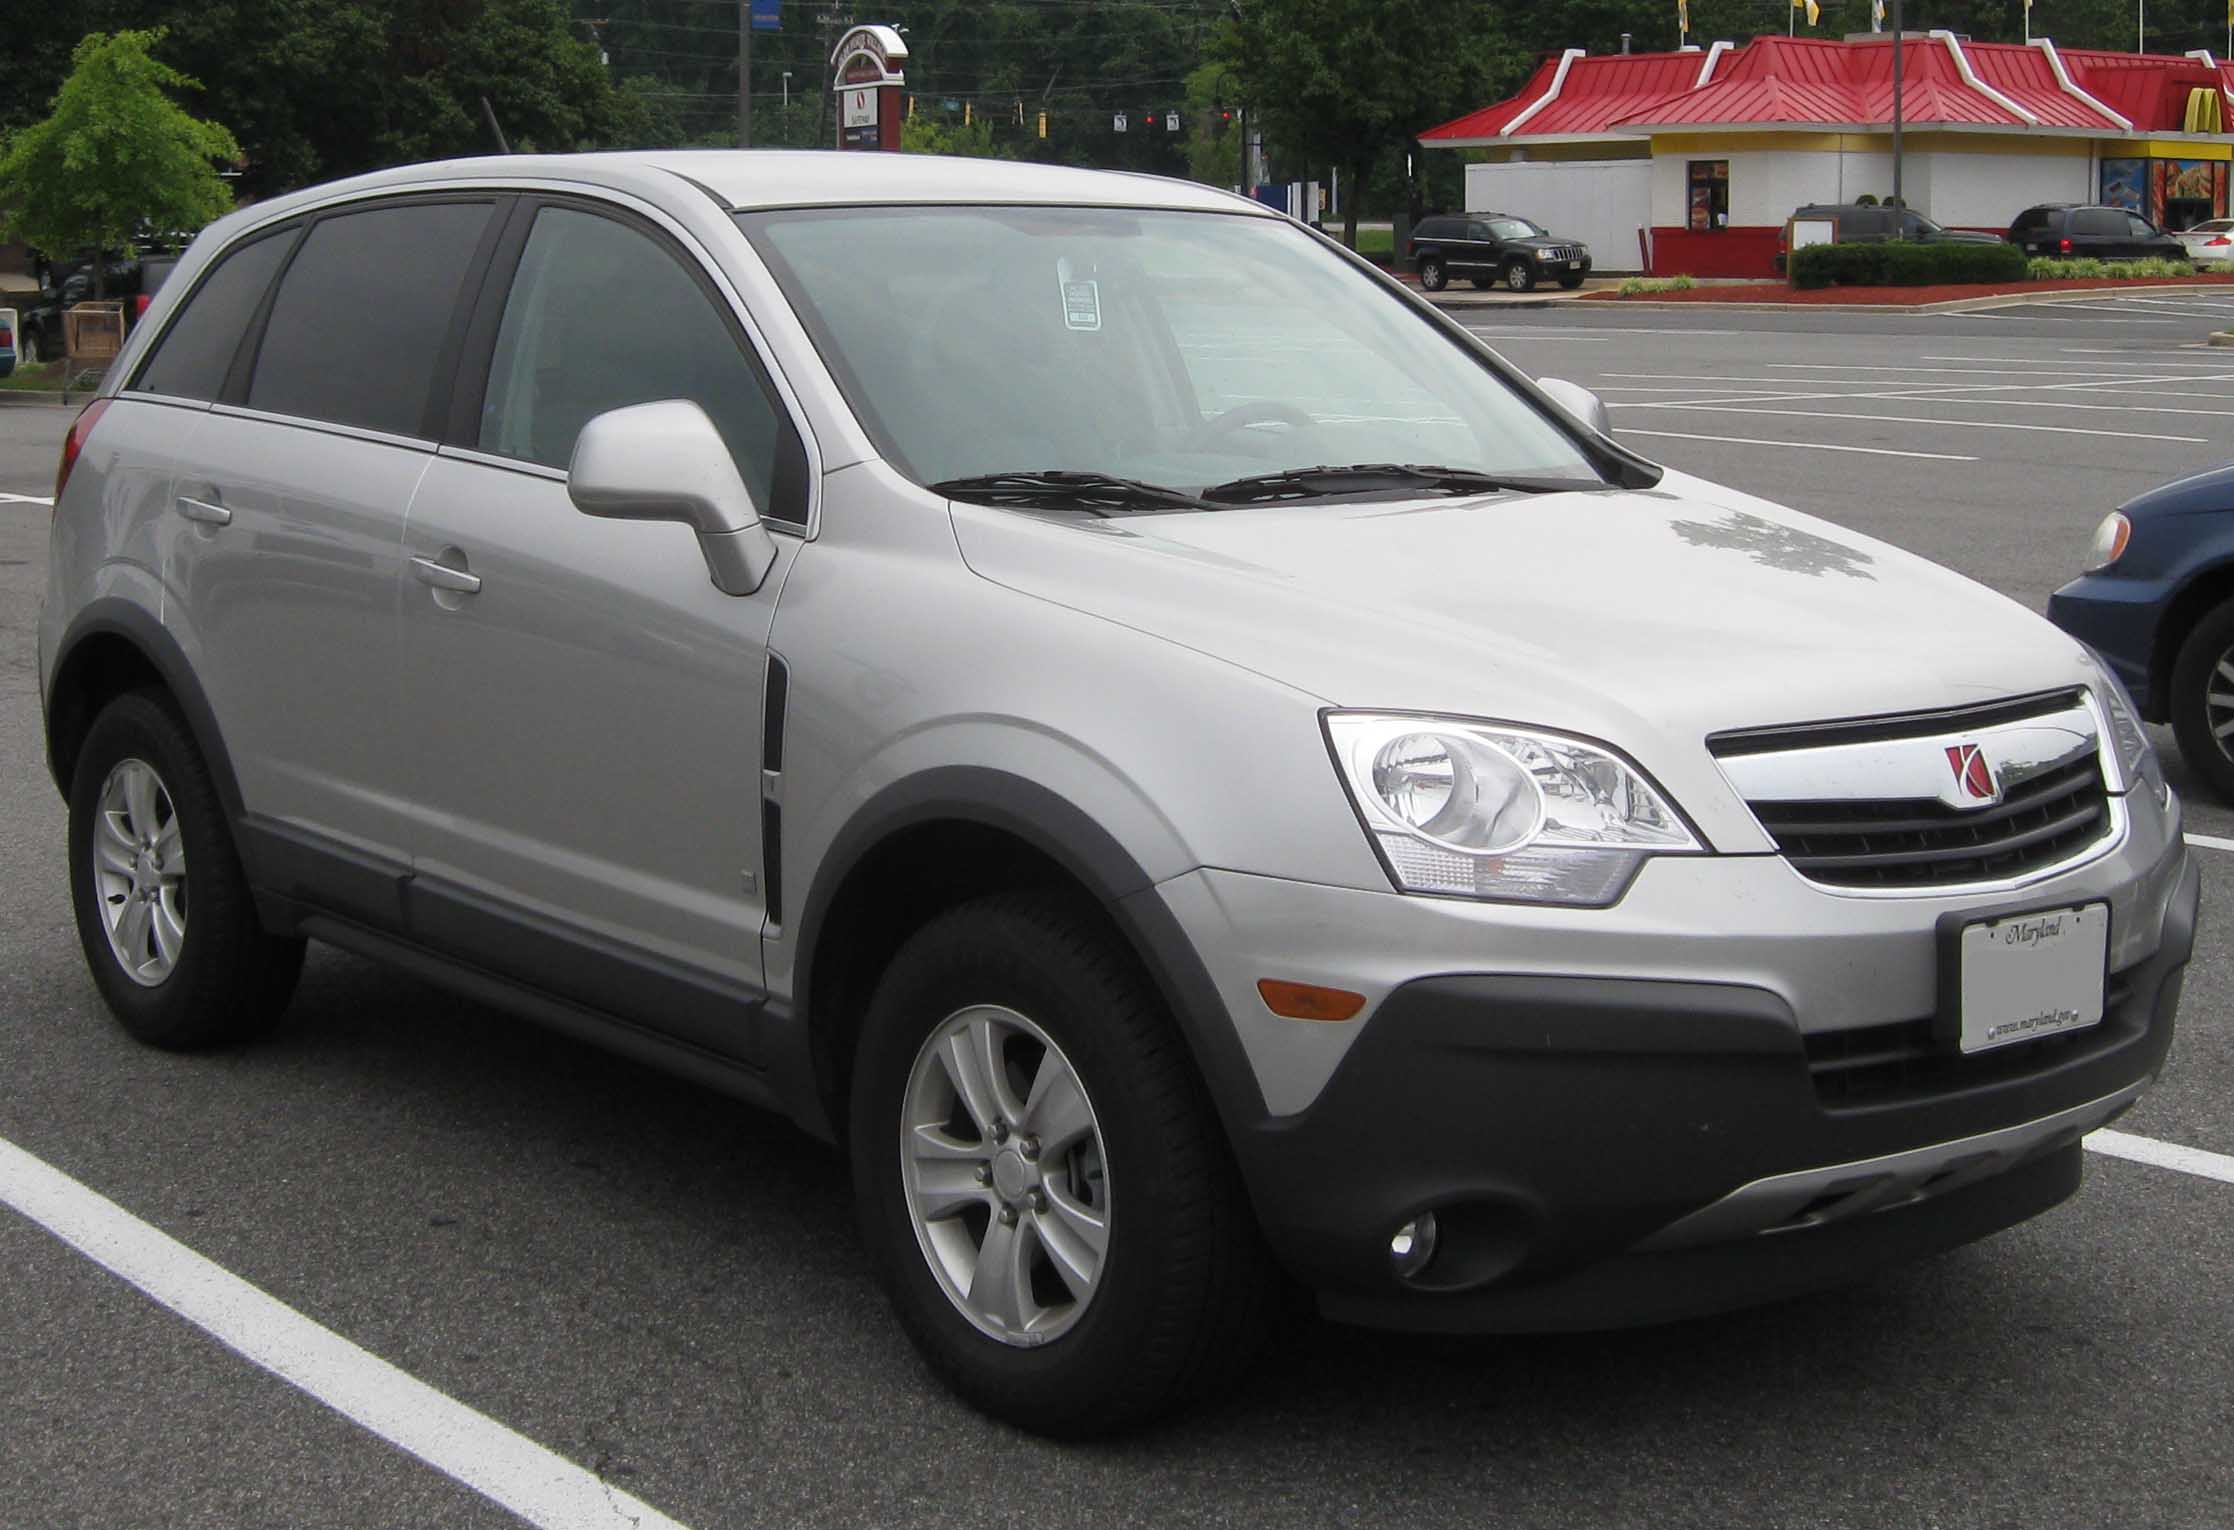 2008 saturn vue information and photos zombiedrive 2008 saturn vue 17 saturn vue 17 vanachro Images